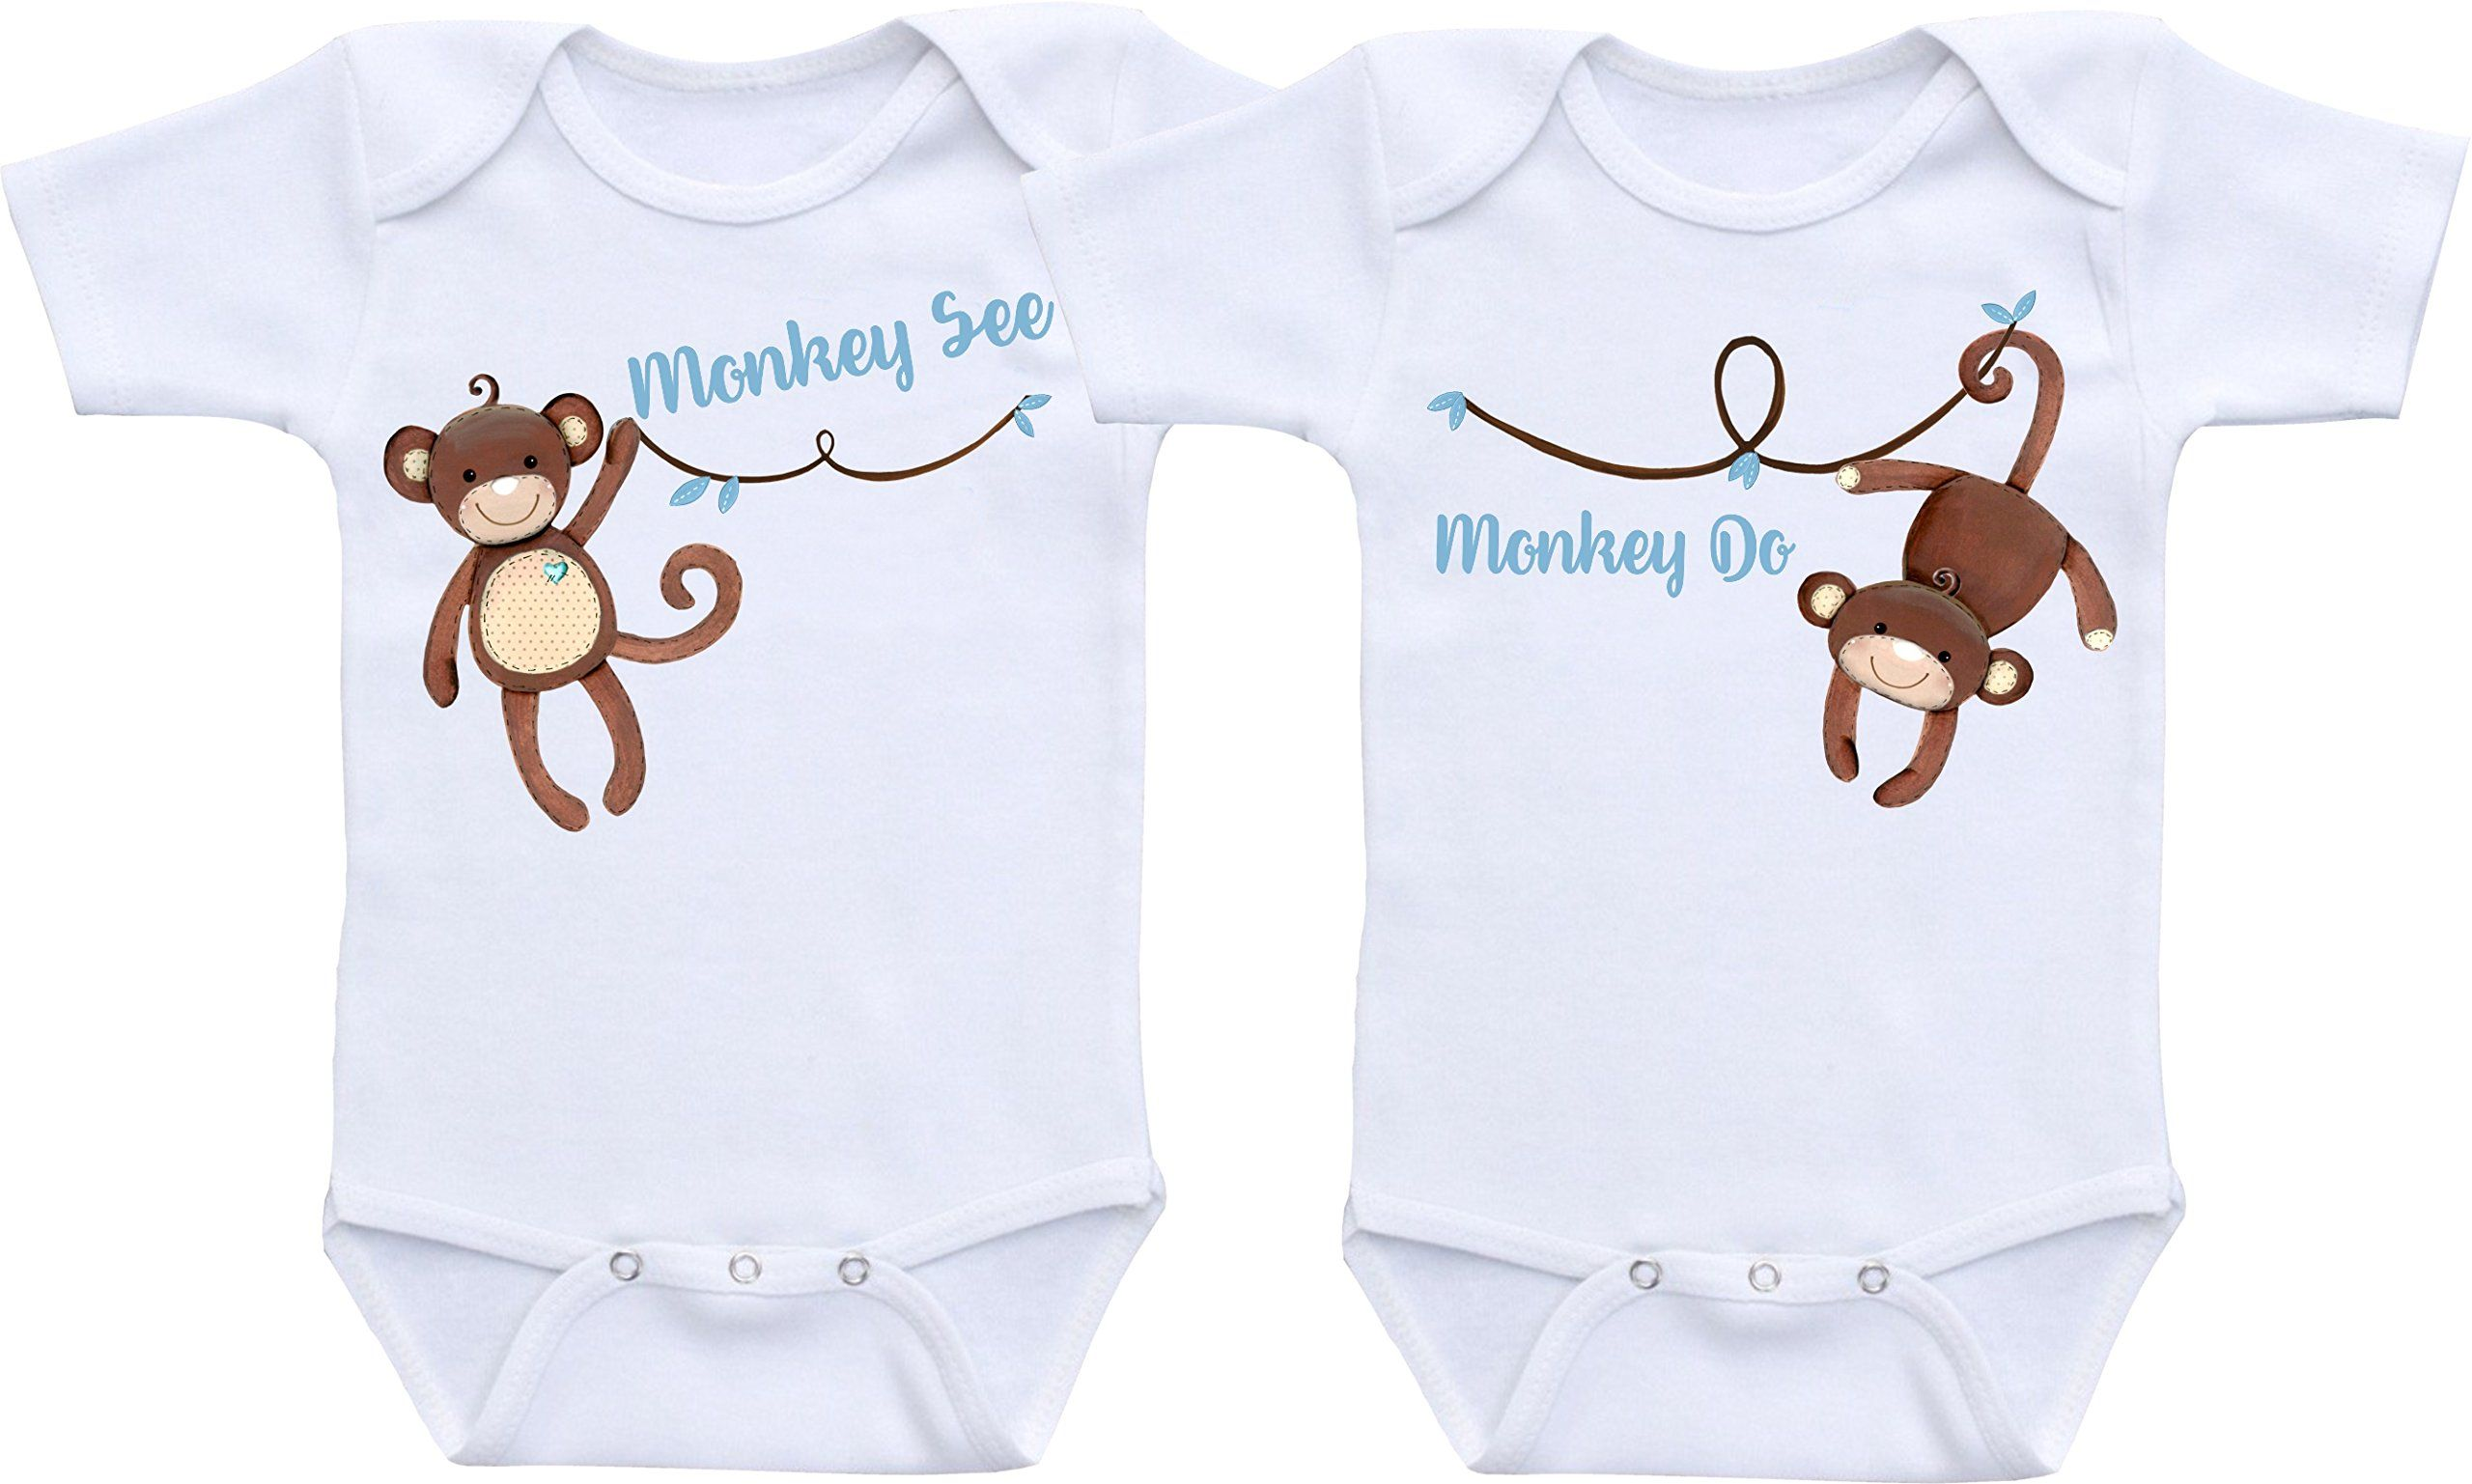 Monkey See Monkey Do Twin Bodysuit Twin Outfit Sets Gender Neutral